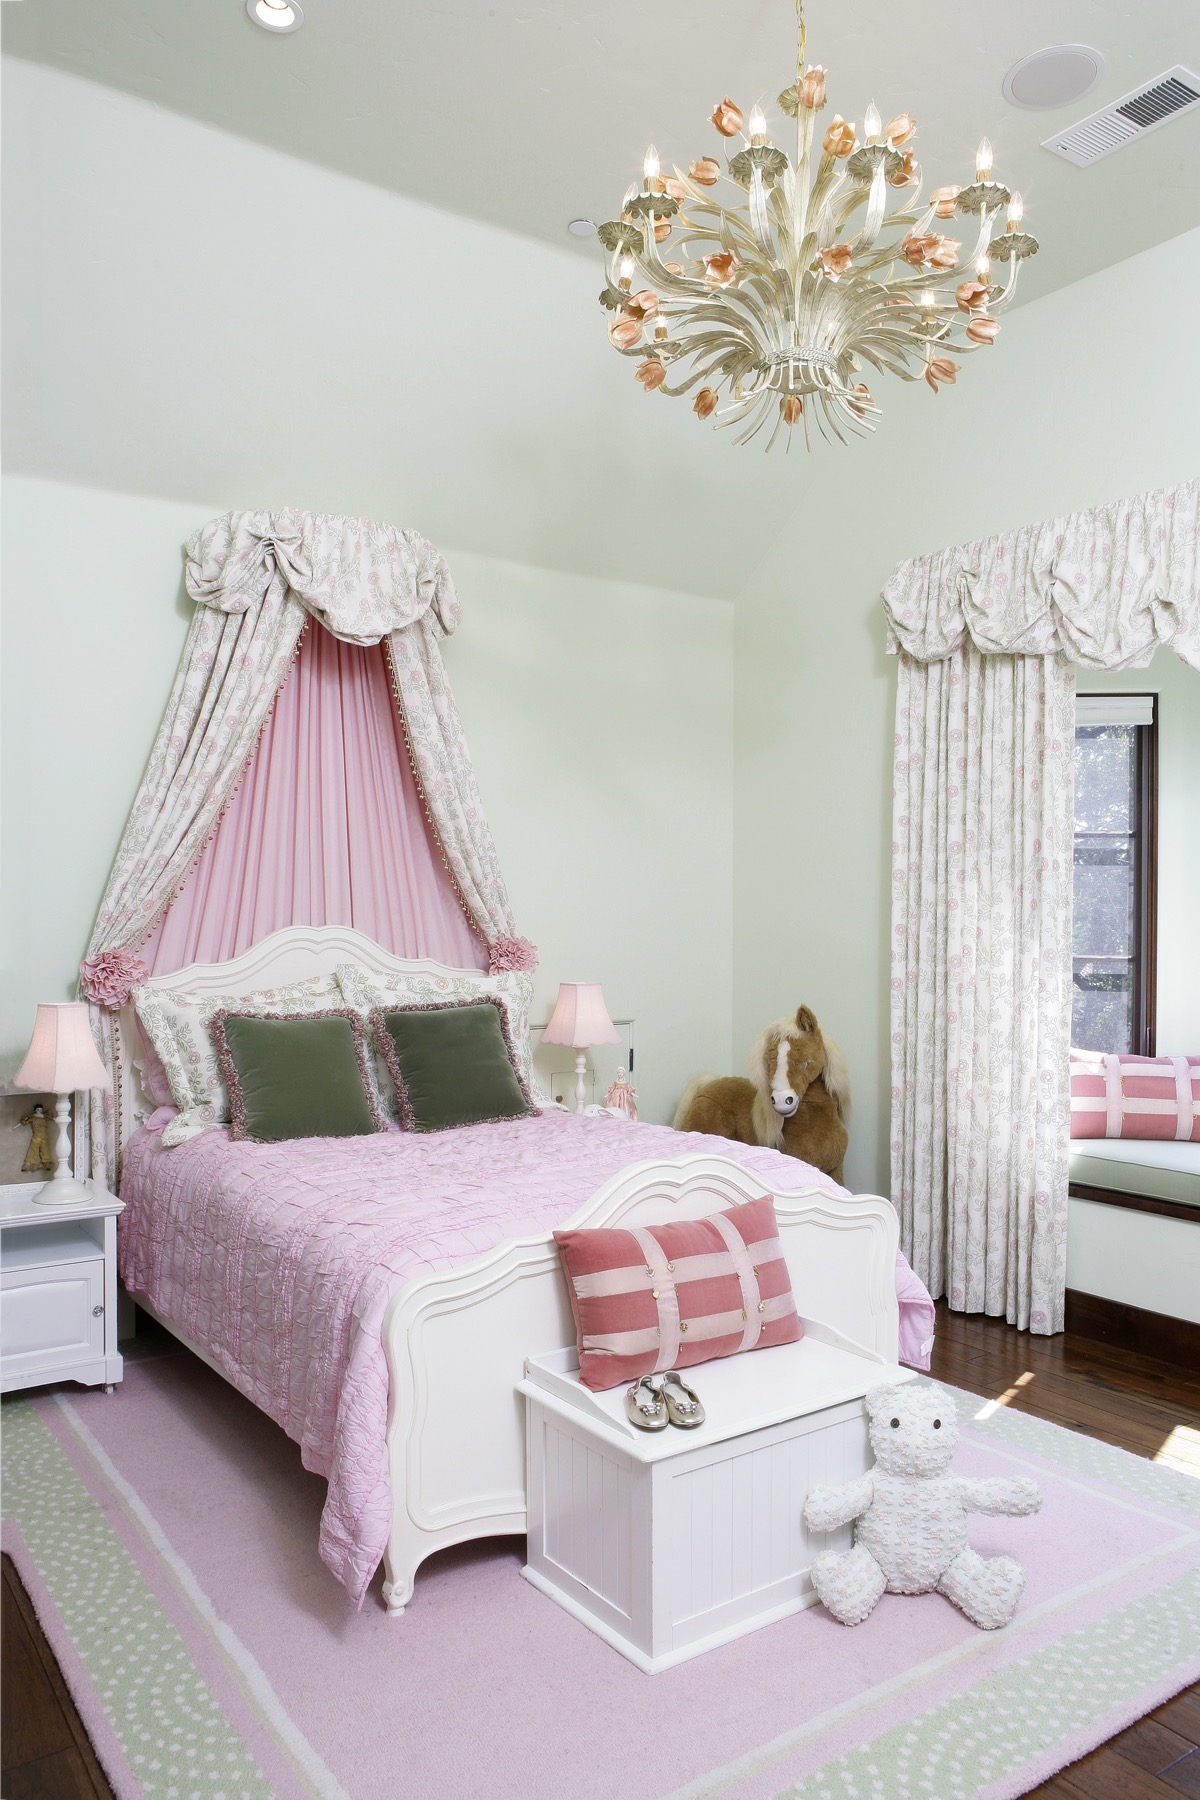 Traditional Light Green Girl's Room With Pink Bedding (Image 27 of 30)